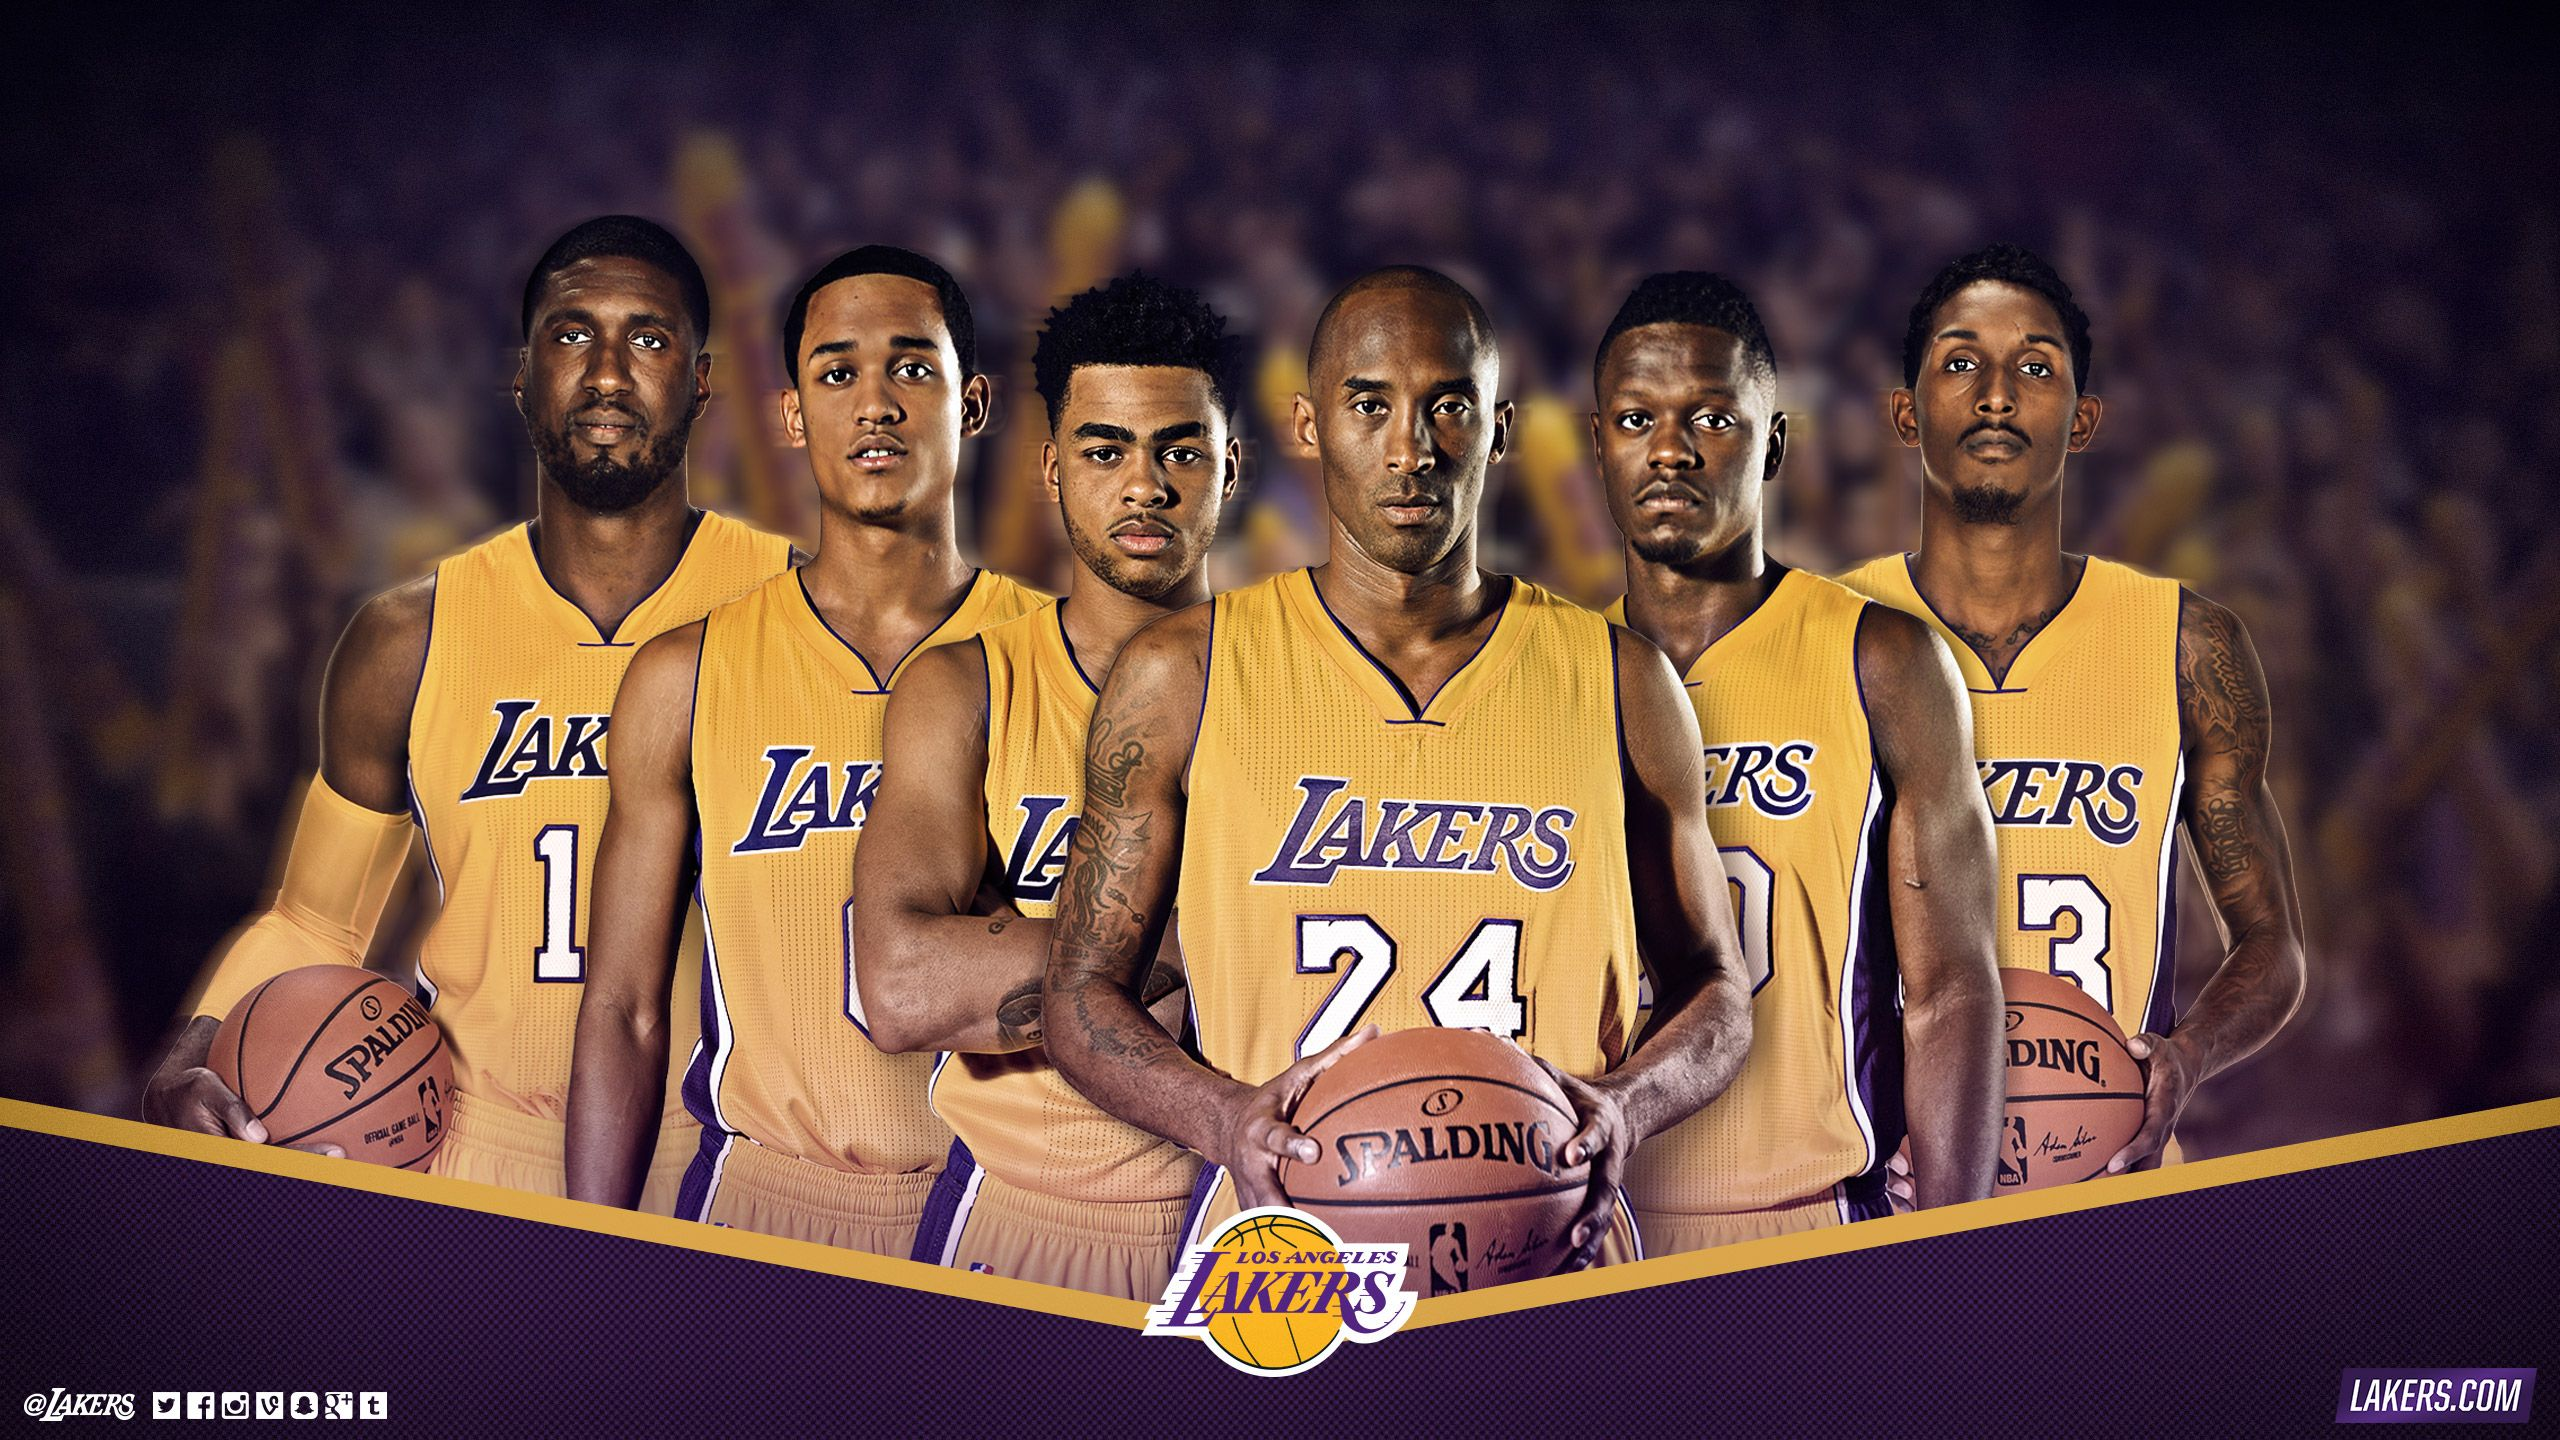 Cool Lakers Wallpaper Lakers wallpaper, Lakers, La lakers